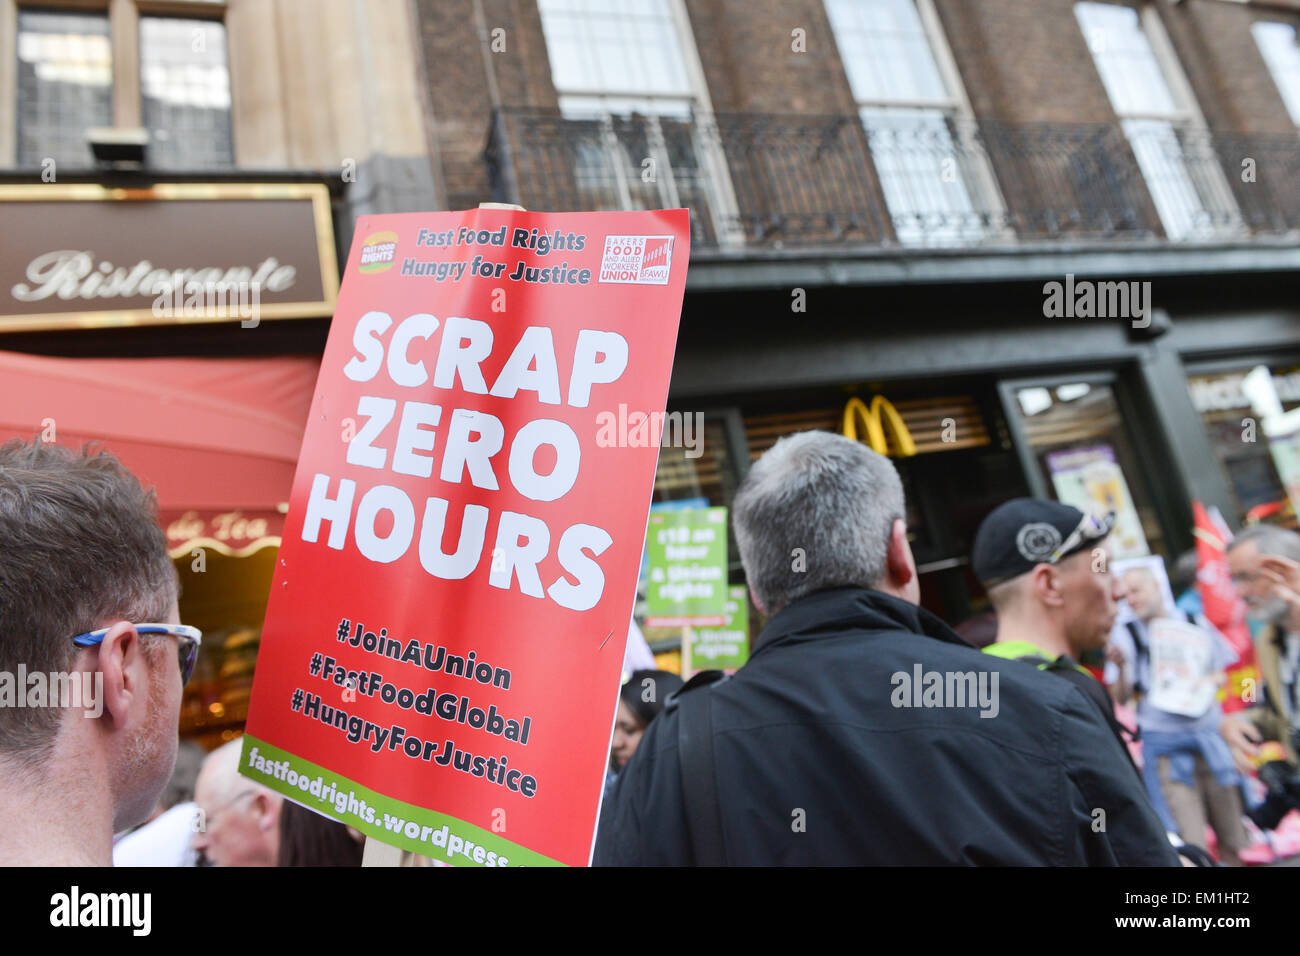 Whitehall, London, UK. 15th April 2015. 'Fast Food Rights', protesters stand outside McDonalds on Whitehall in central Stock Photo